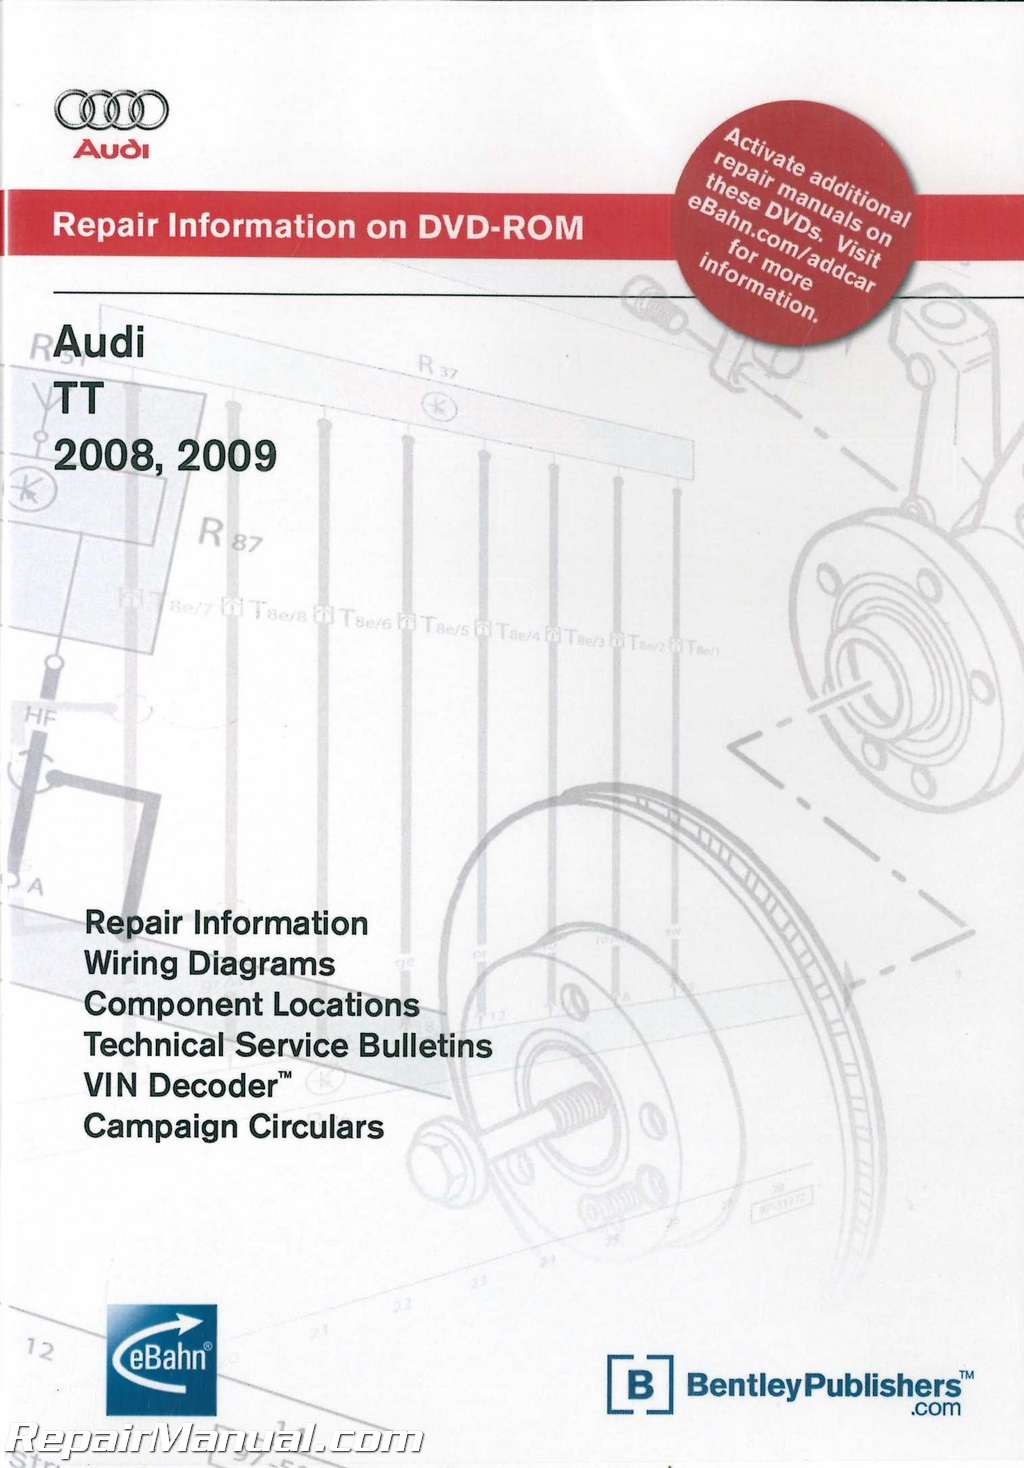 2008 2009 Audi TT Repair Manual DVD ROM_003 audi automobile manuals repair manuals online 2000 audi tt wiring diagram at fashall.co